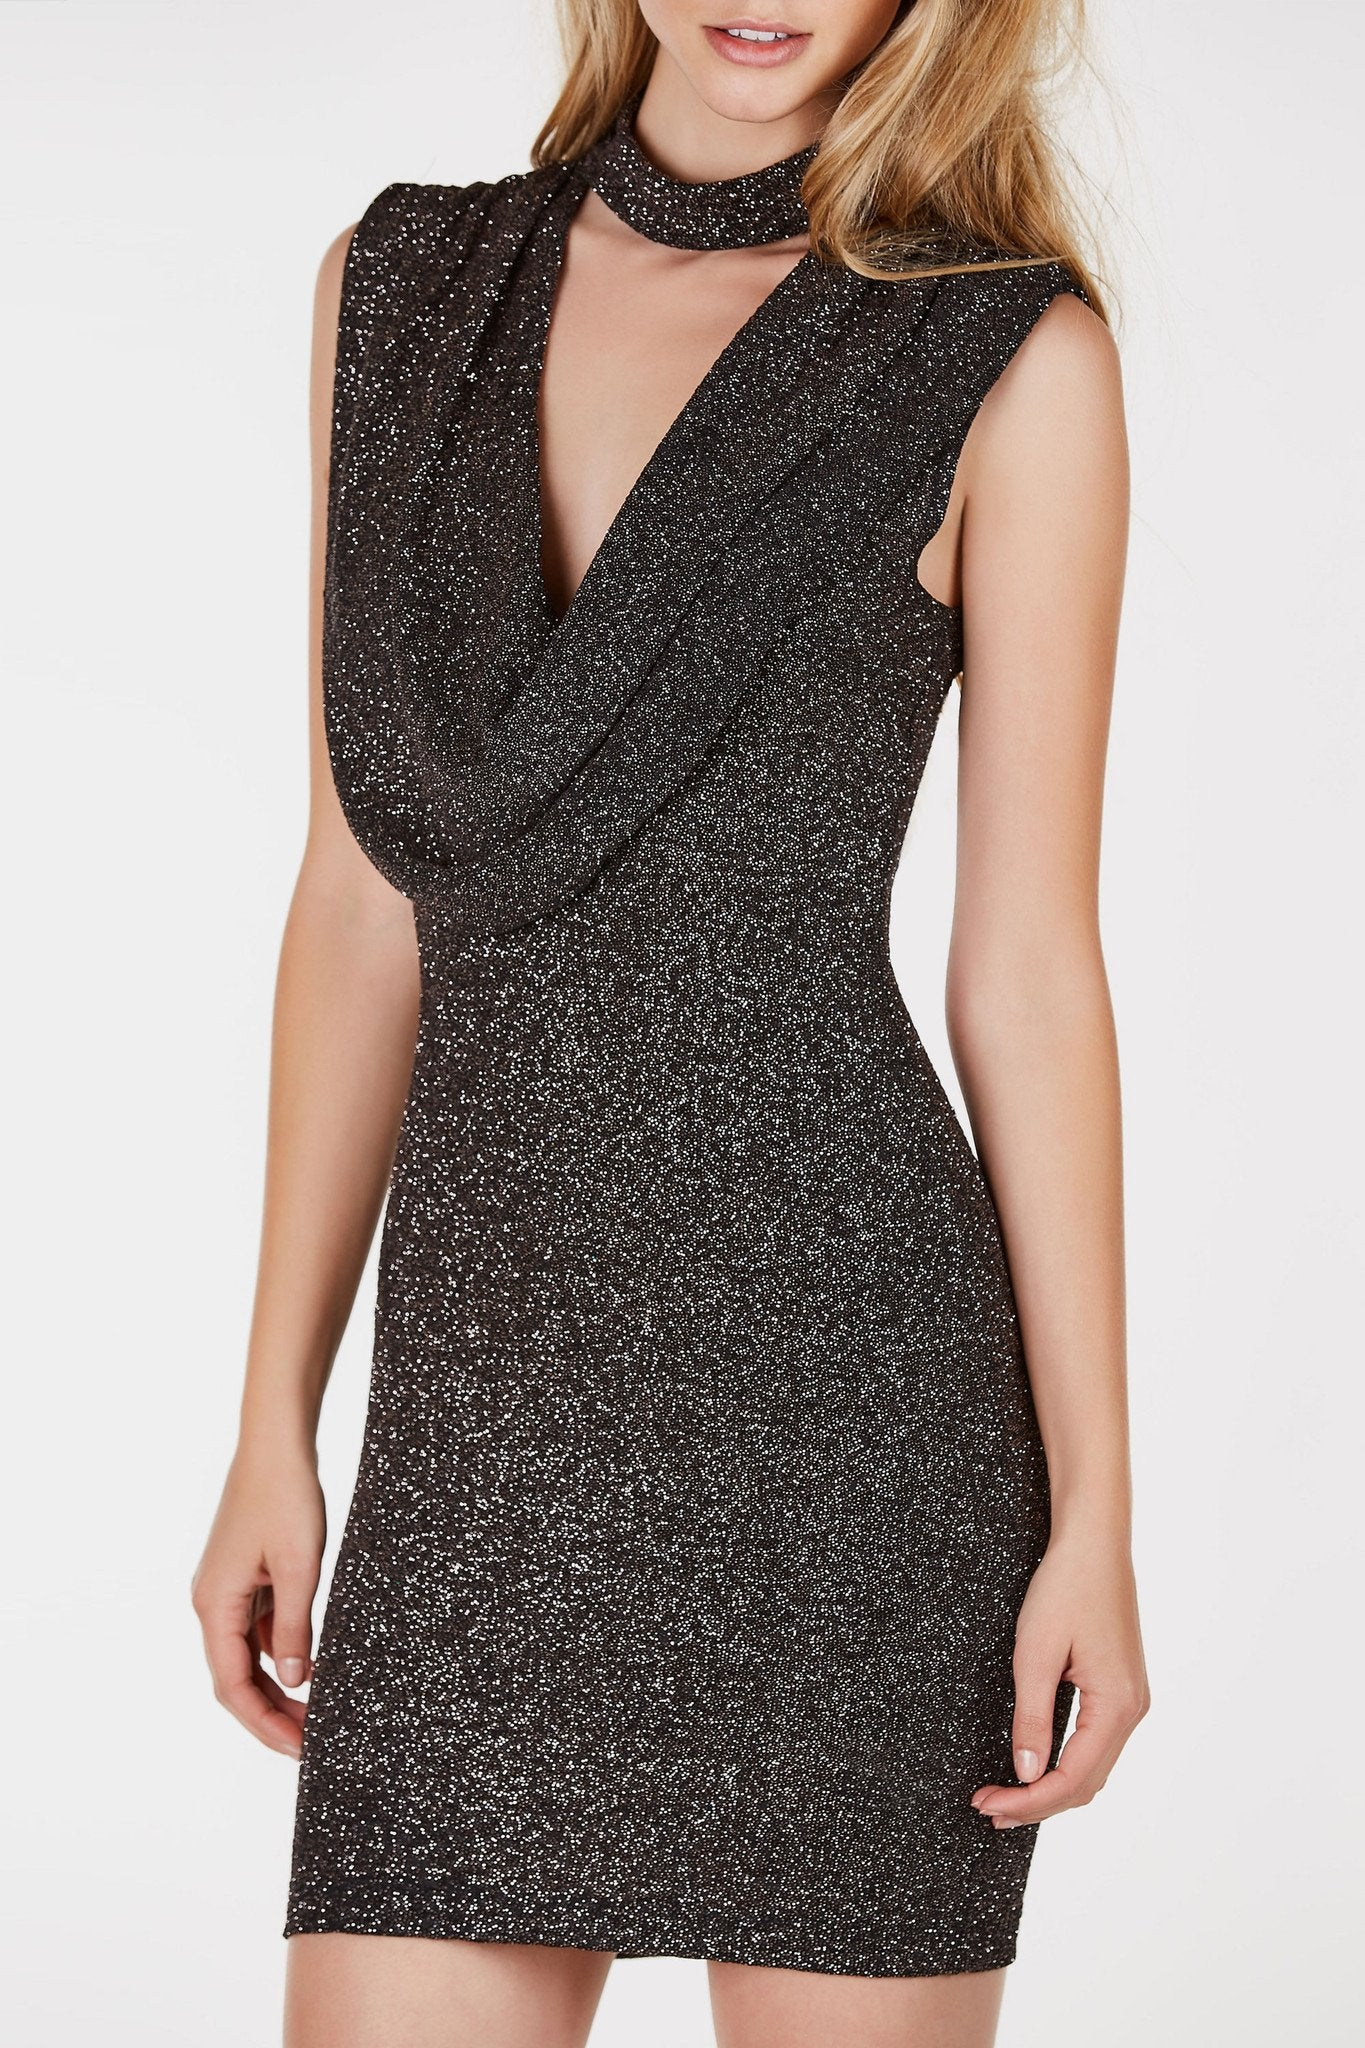 Choker neck dress with deep cut out with draped finish. Fine glitter finish throughout with straight hem.